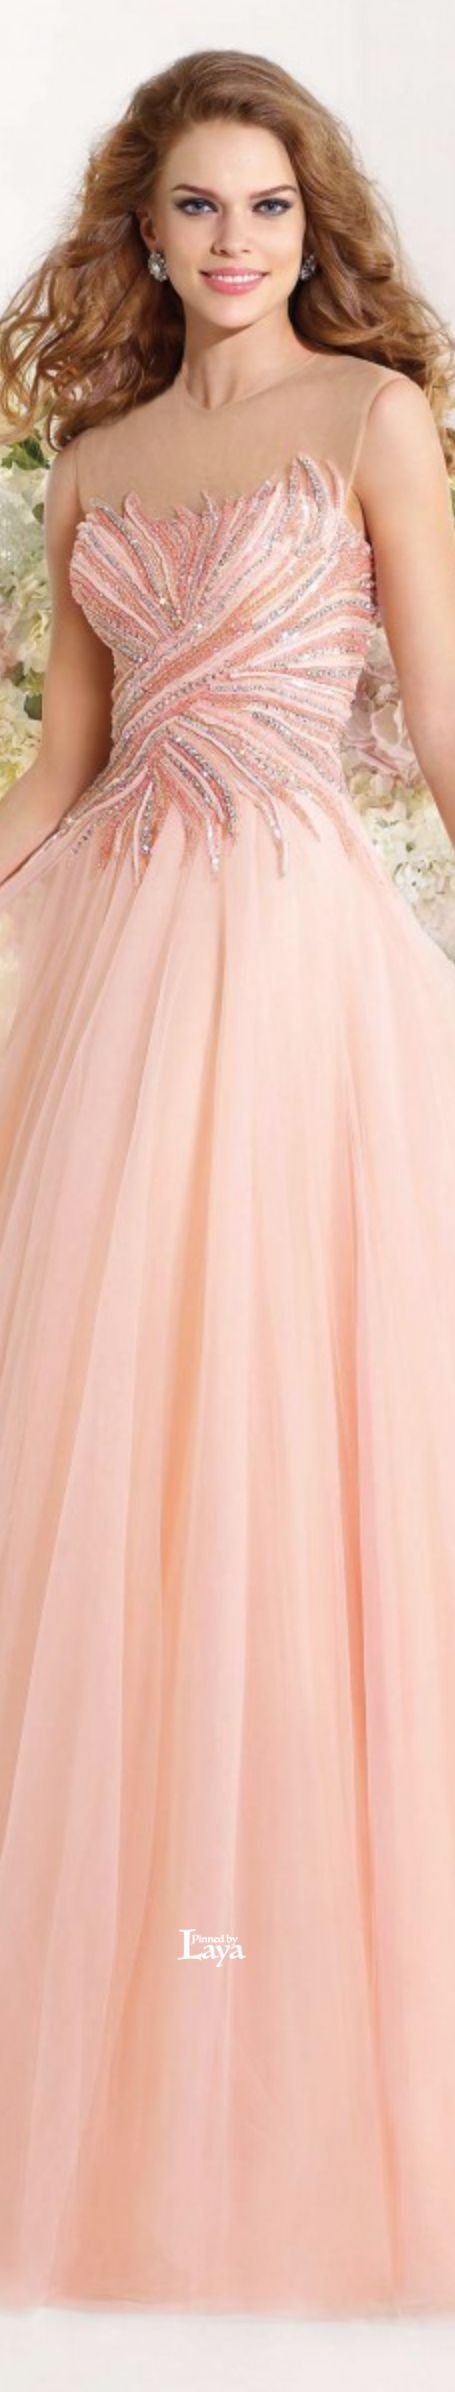 329 best Robes images on Pinterest | Low cut dresses, Bridal gowns ...